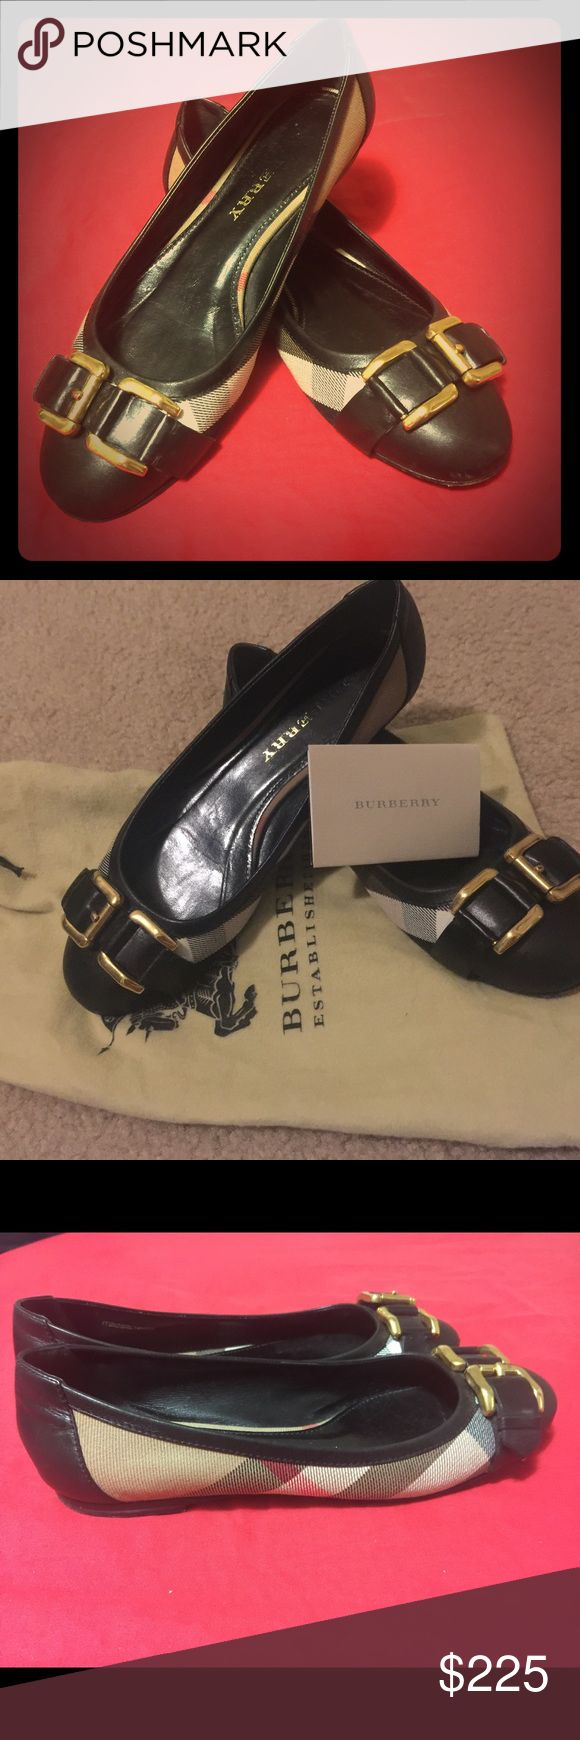 Beautiful Burberry flats -wore them 4 times Bought them size 7 and felt like they fit. I am a 7.5 and I tried to wear them  (because they looked sooo good) 4 times and every time I went home and changed. But they look so good on the foot. I really want to give them to someone who is going to really enjoy wearing them. Poor shoes, they are like new. The black soles are a little worn out because they are covered with a thin layer of black leather so that happened from the first time I wore…